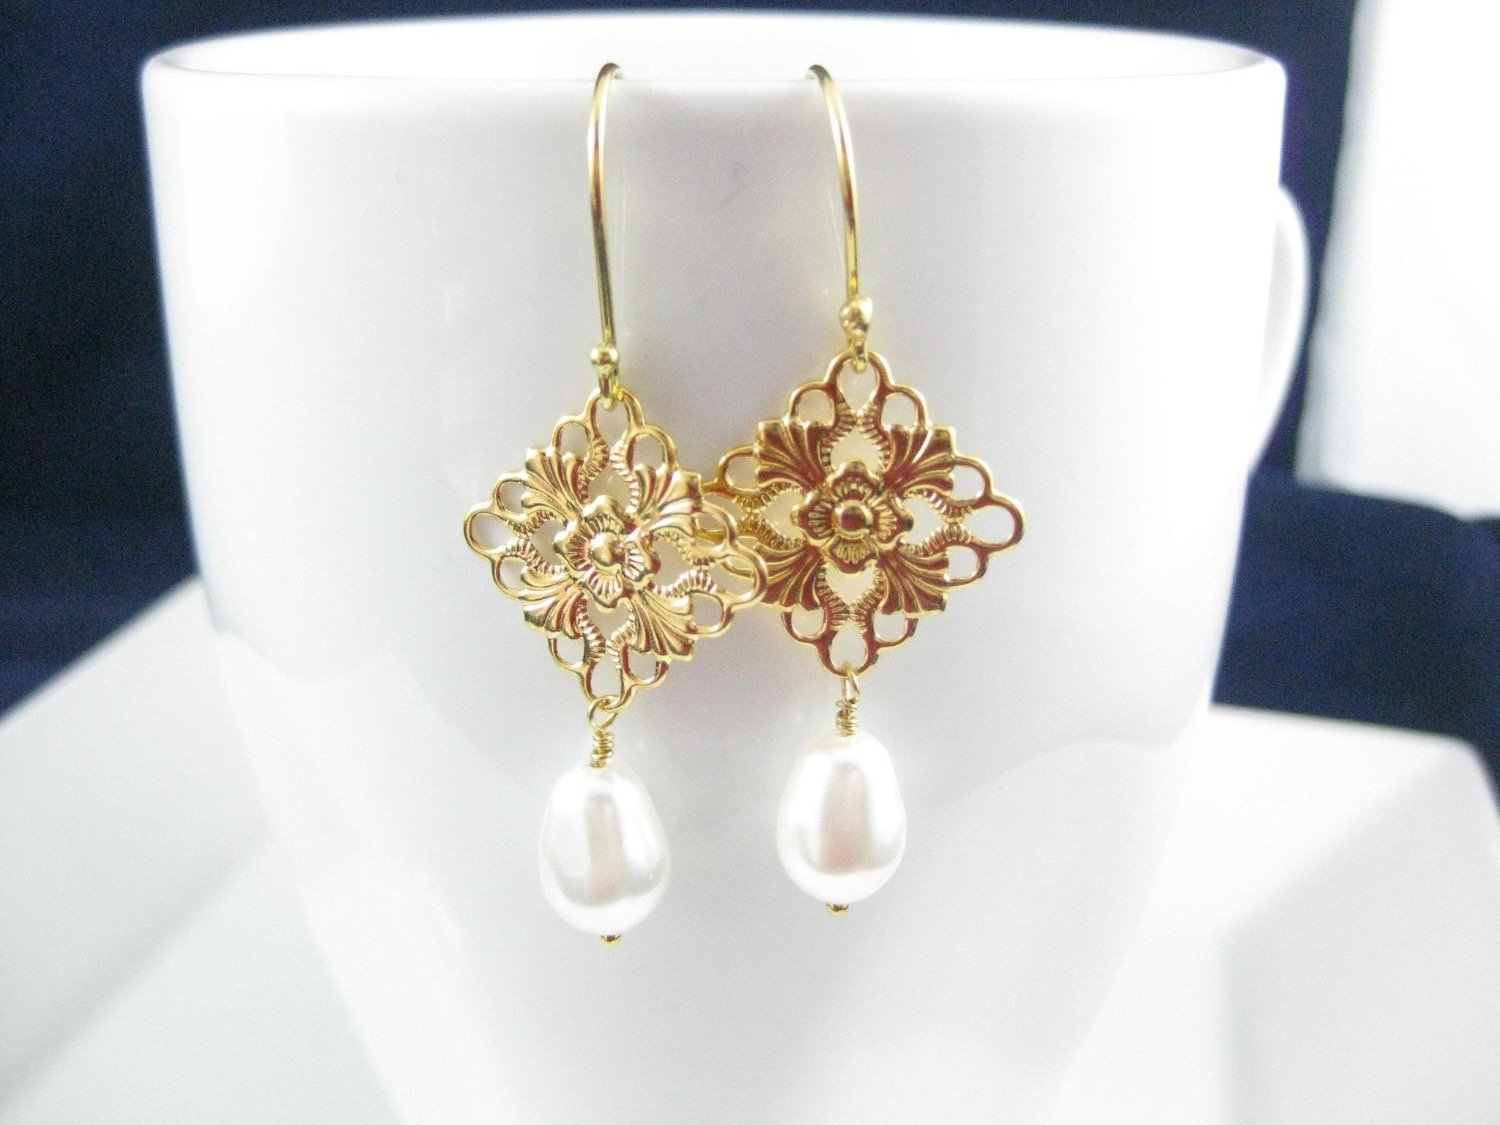 Gold and white pearl earrings bridal jewelry - Clairesbridal - 3